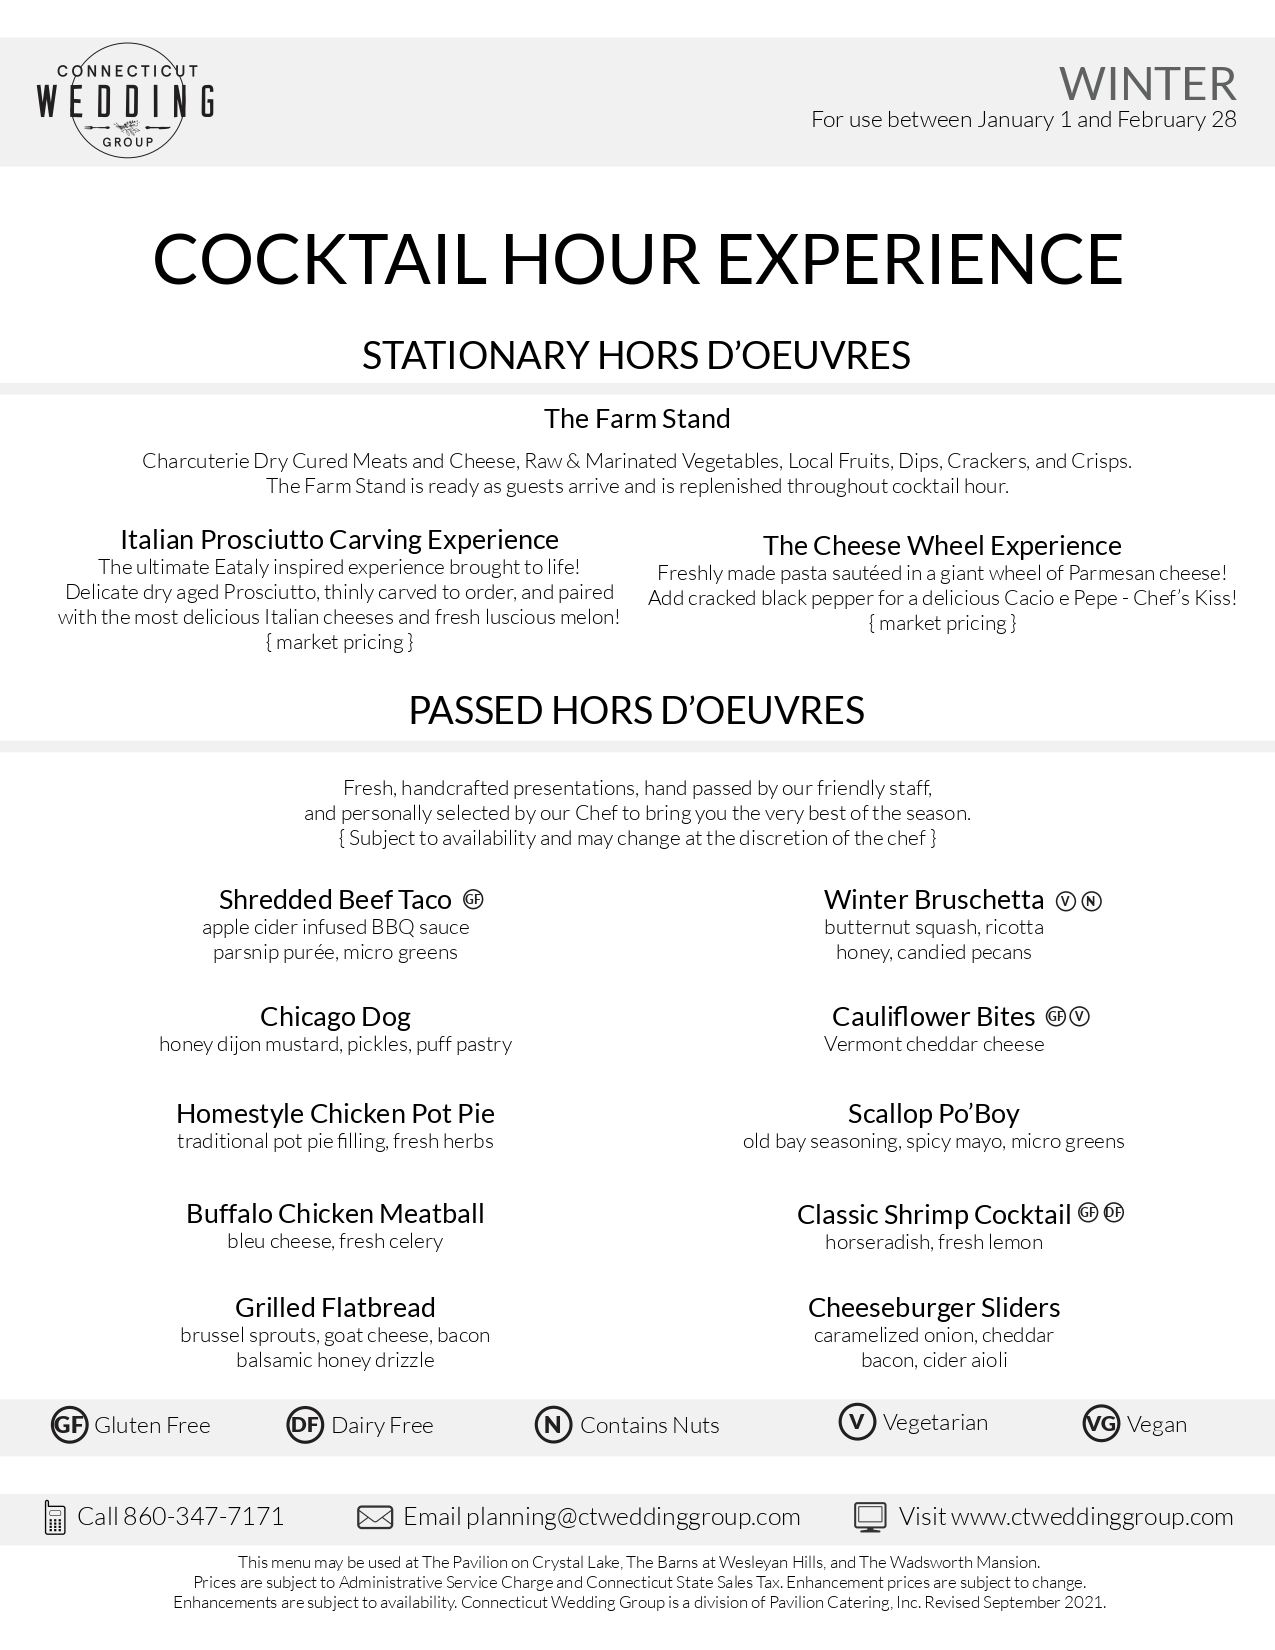 Winter-Cocktail-Hour-Culinary-Experiences-2022_NEW_page-0001